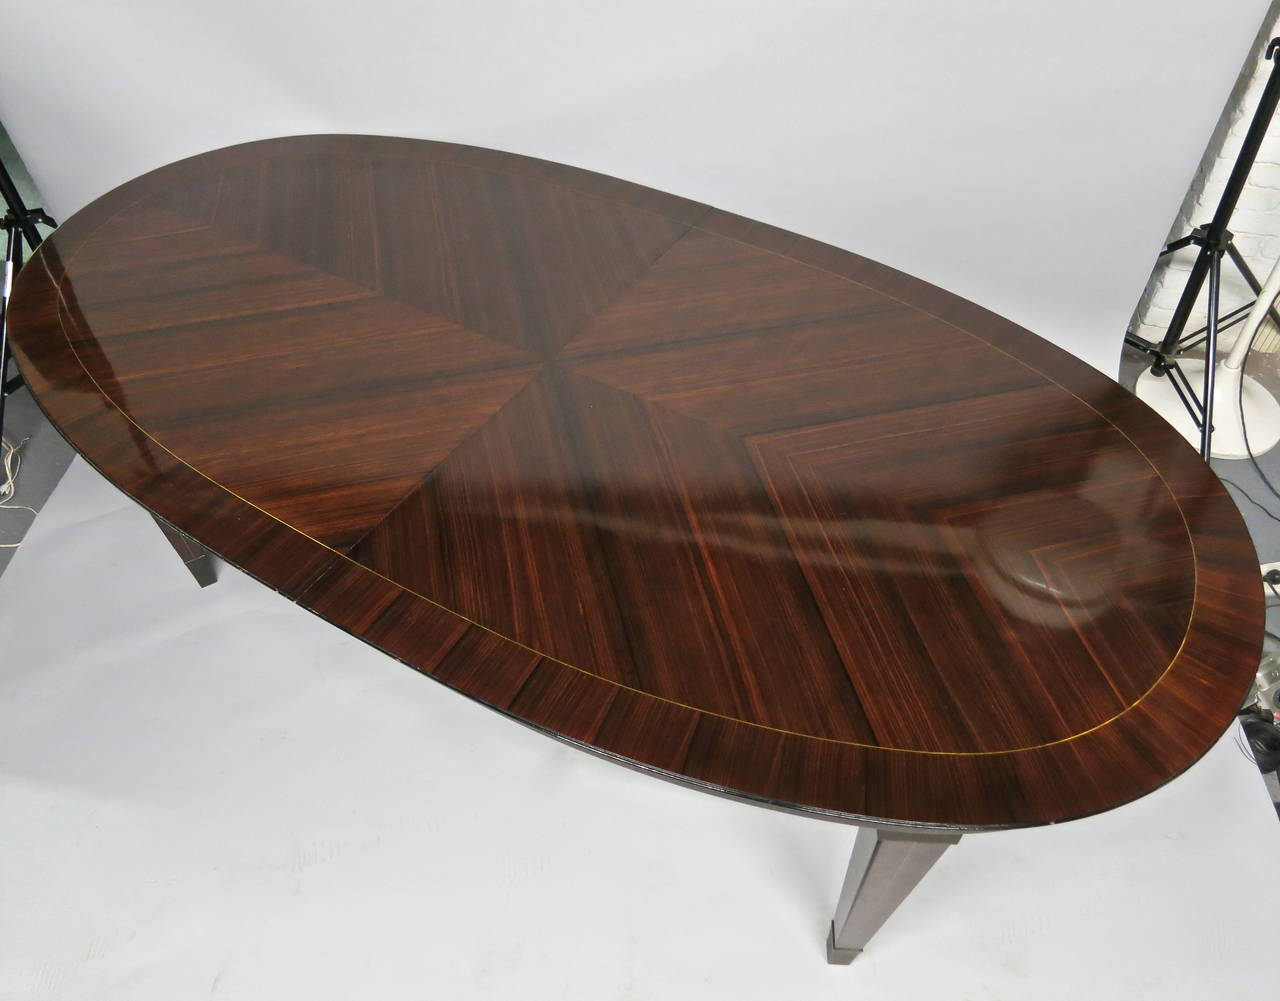 Dining Table designed by Dominique circa 1940 Design, Made in France In Excellent Condition For Sale In Jersey City, NJ